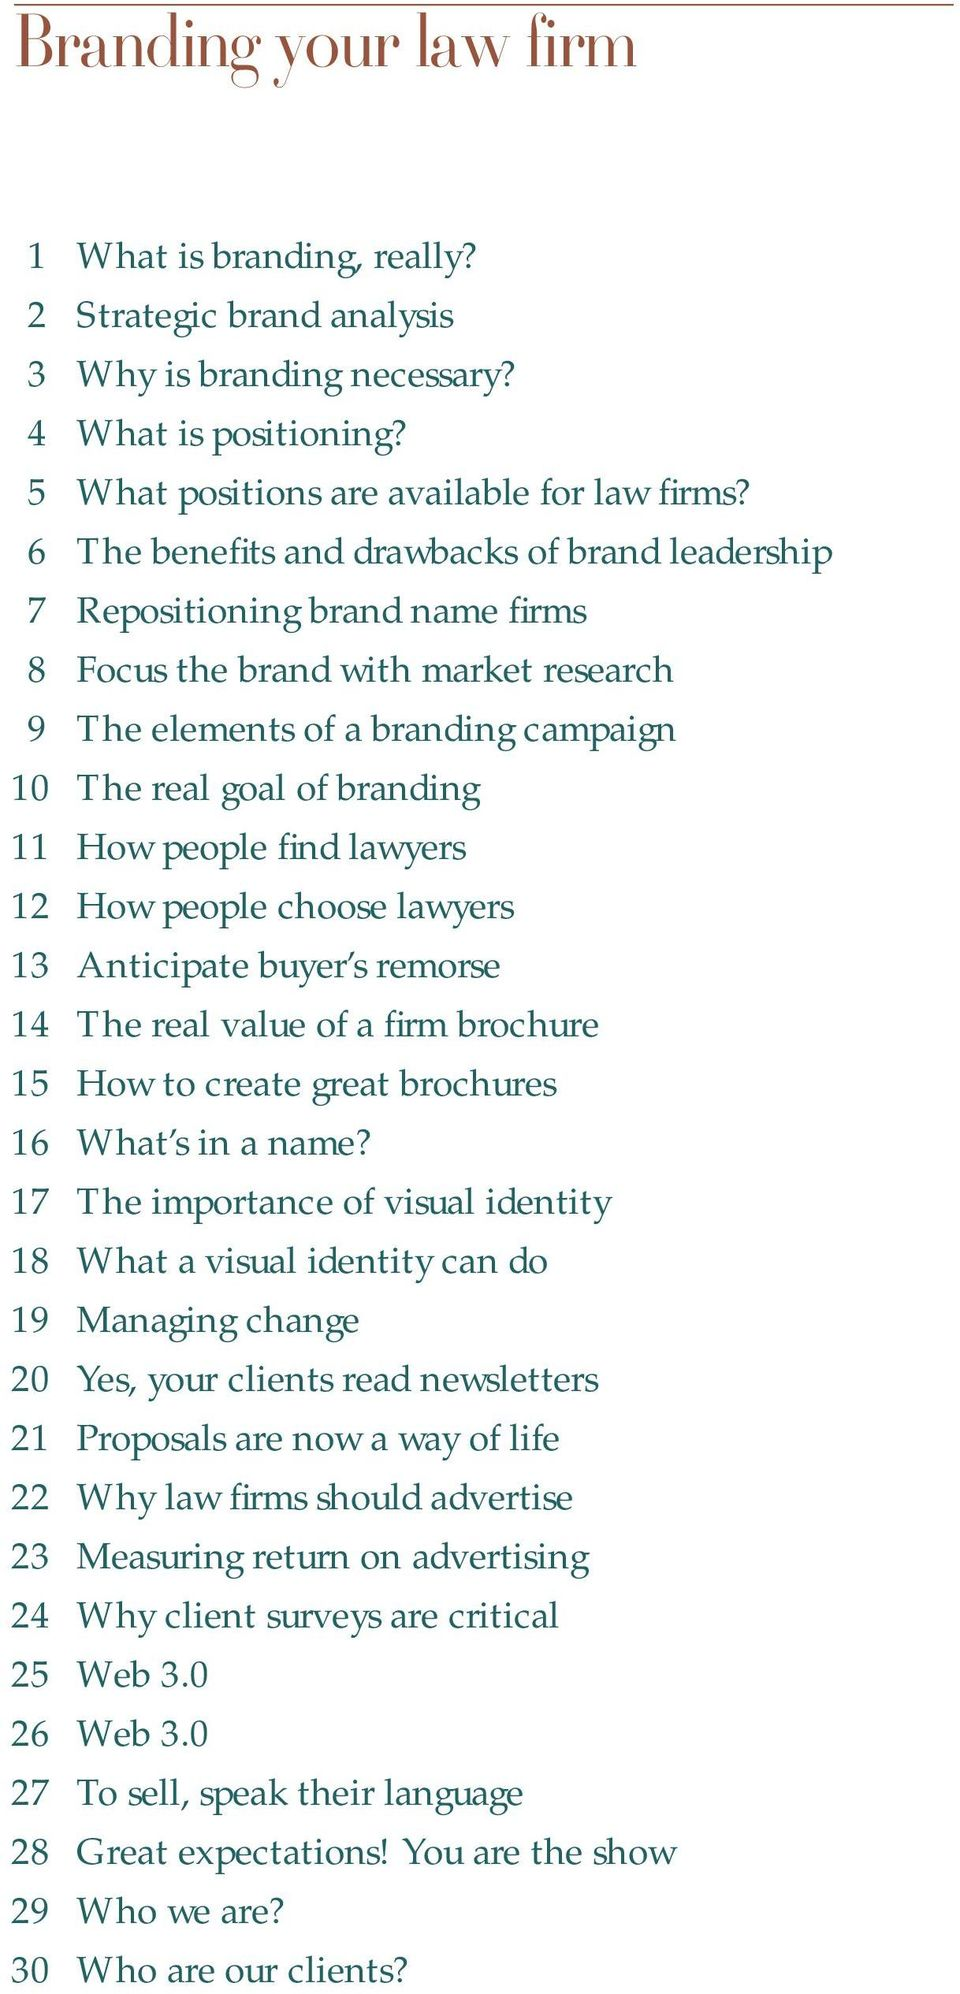 people find lawyers 12 How people choose lawyers 13 Anticipate buyer s remorse 14 The real value of a firm brochure 15 How to create great brochures 16 What s in a name?